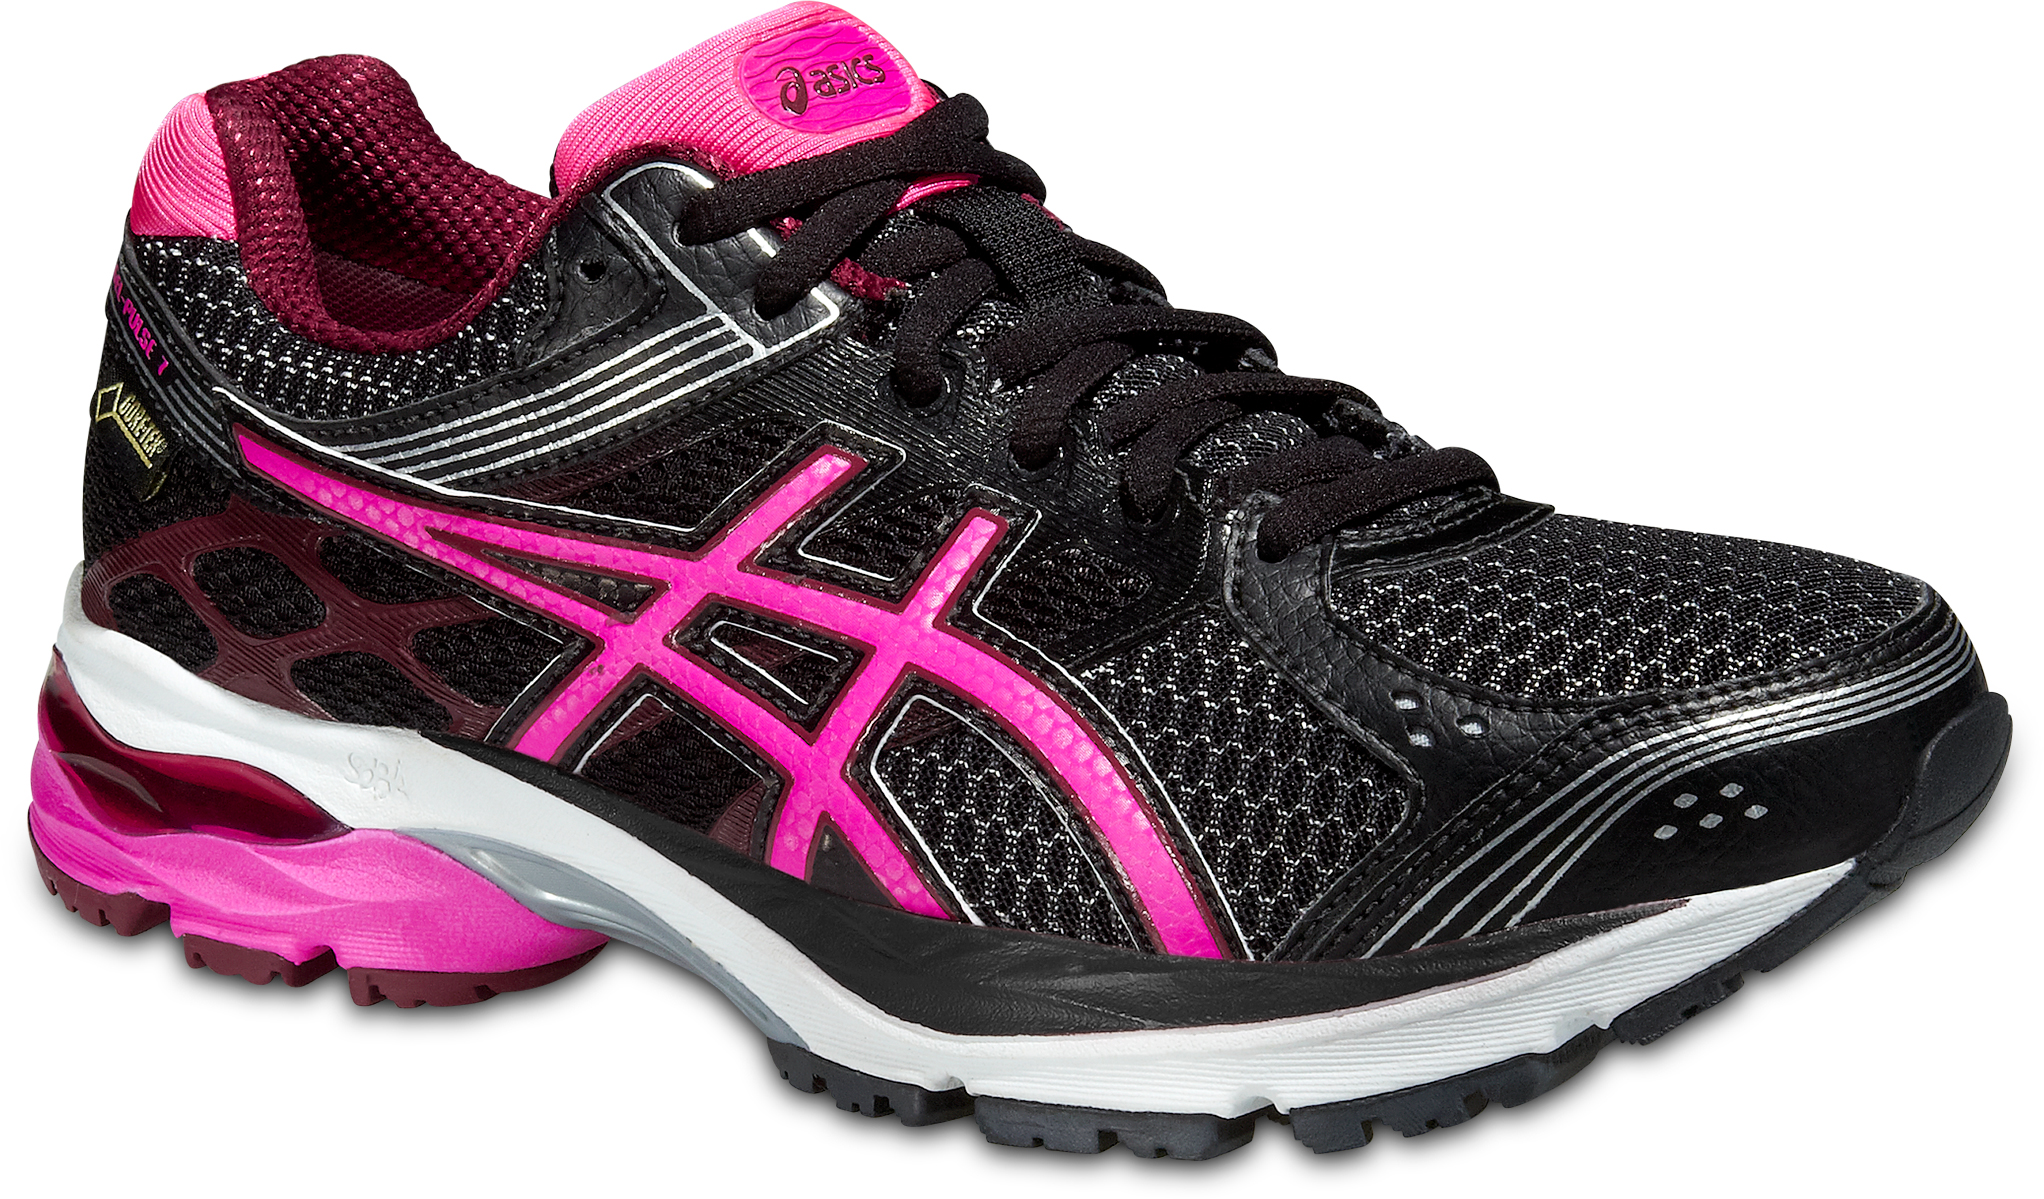 Chaussures de running | Asics | Women's Gel Pulse 7 GTX